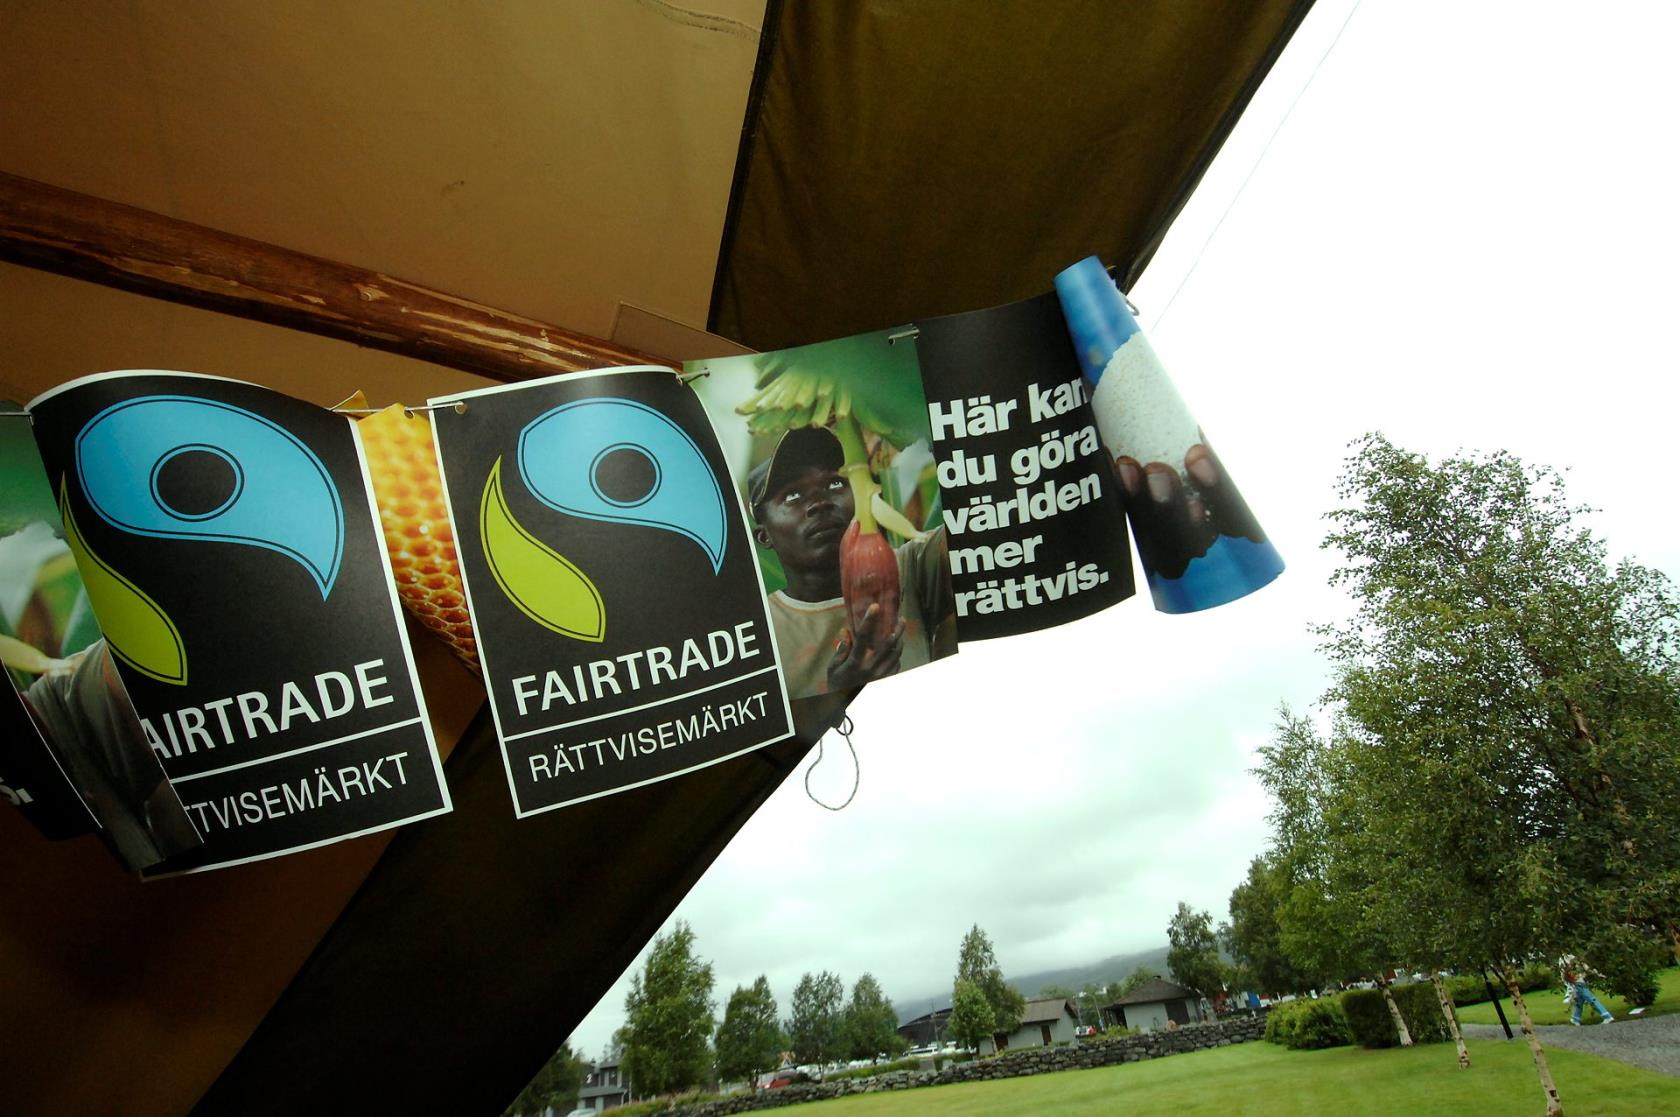 Fairtradevimplar